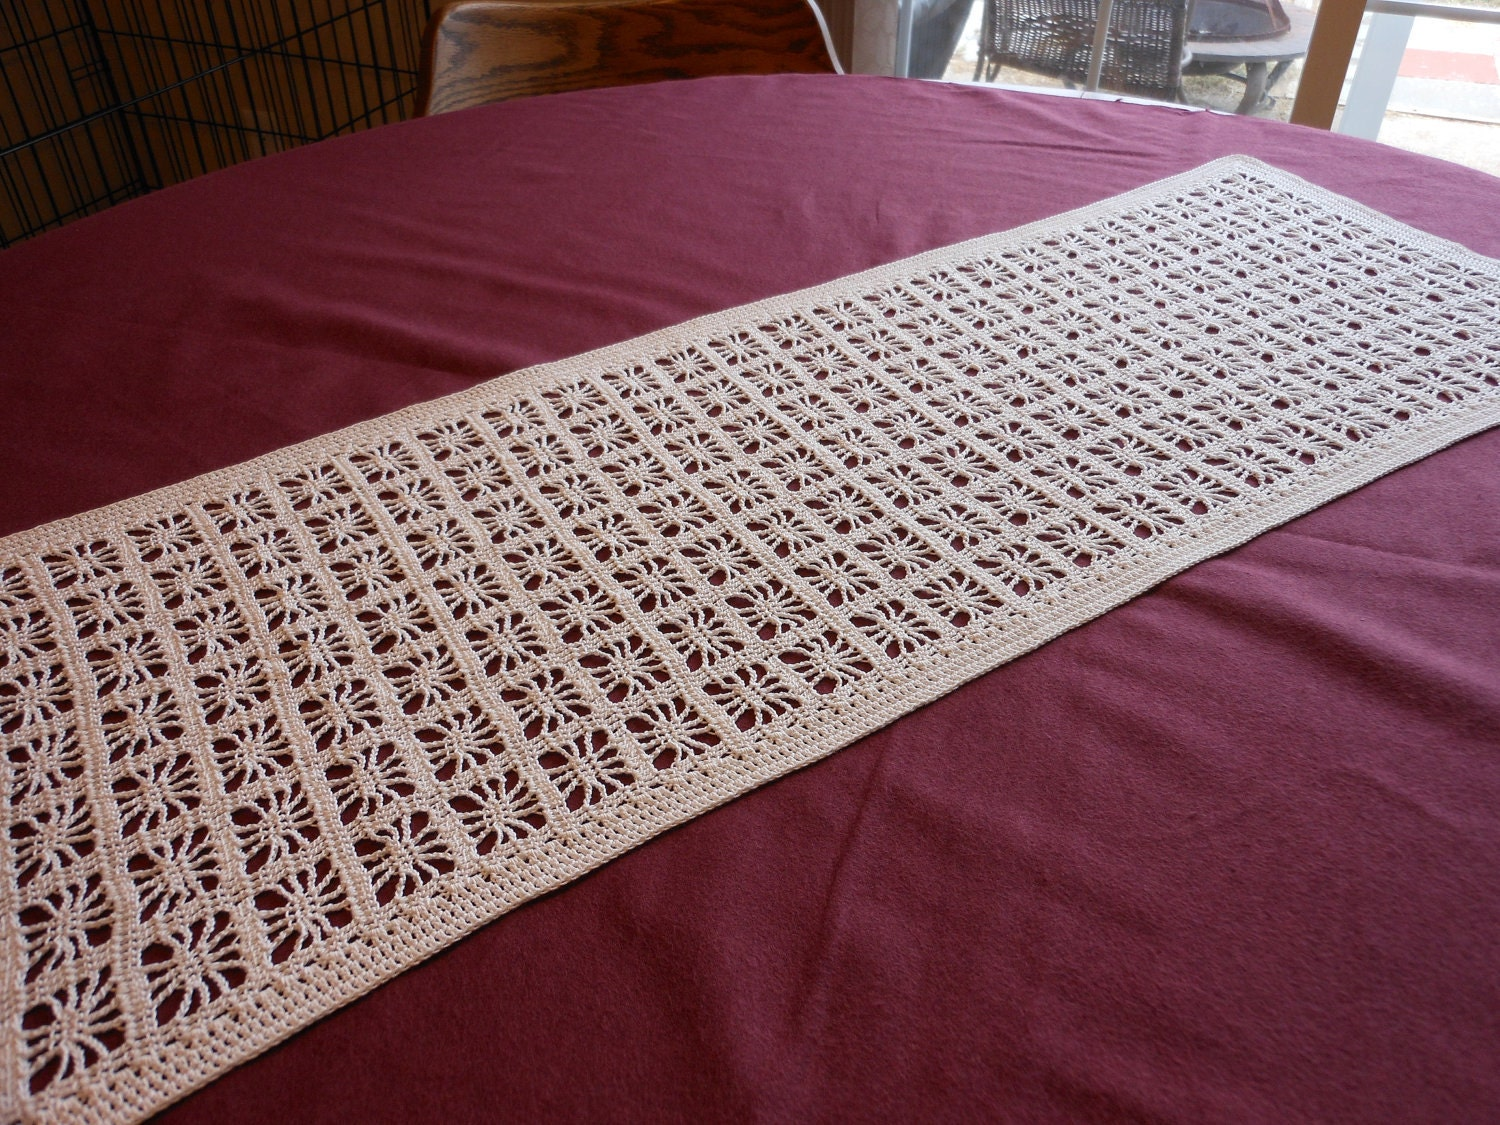 Crochet Patterns Table Runner : CROCHET KNIT PATTERN RUNNER TABLE - CROCHET PATTERN